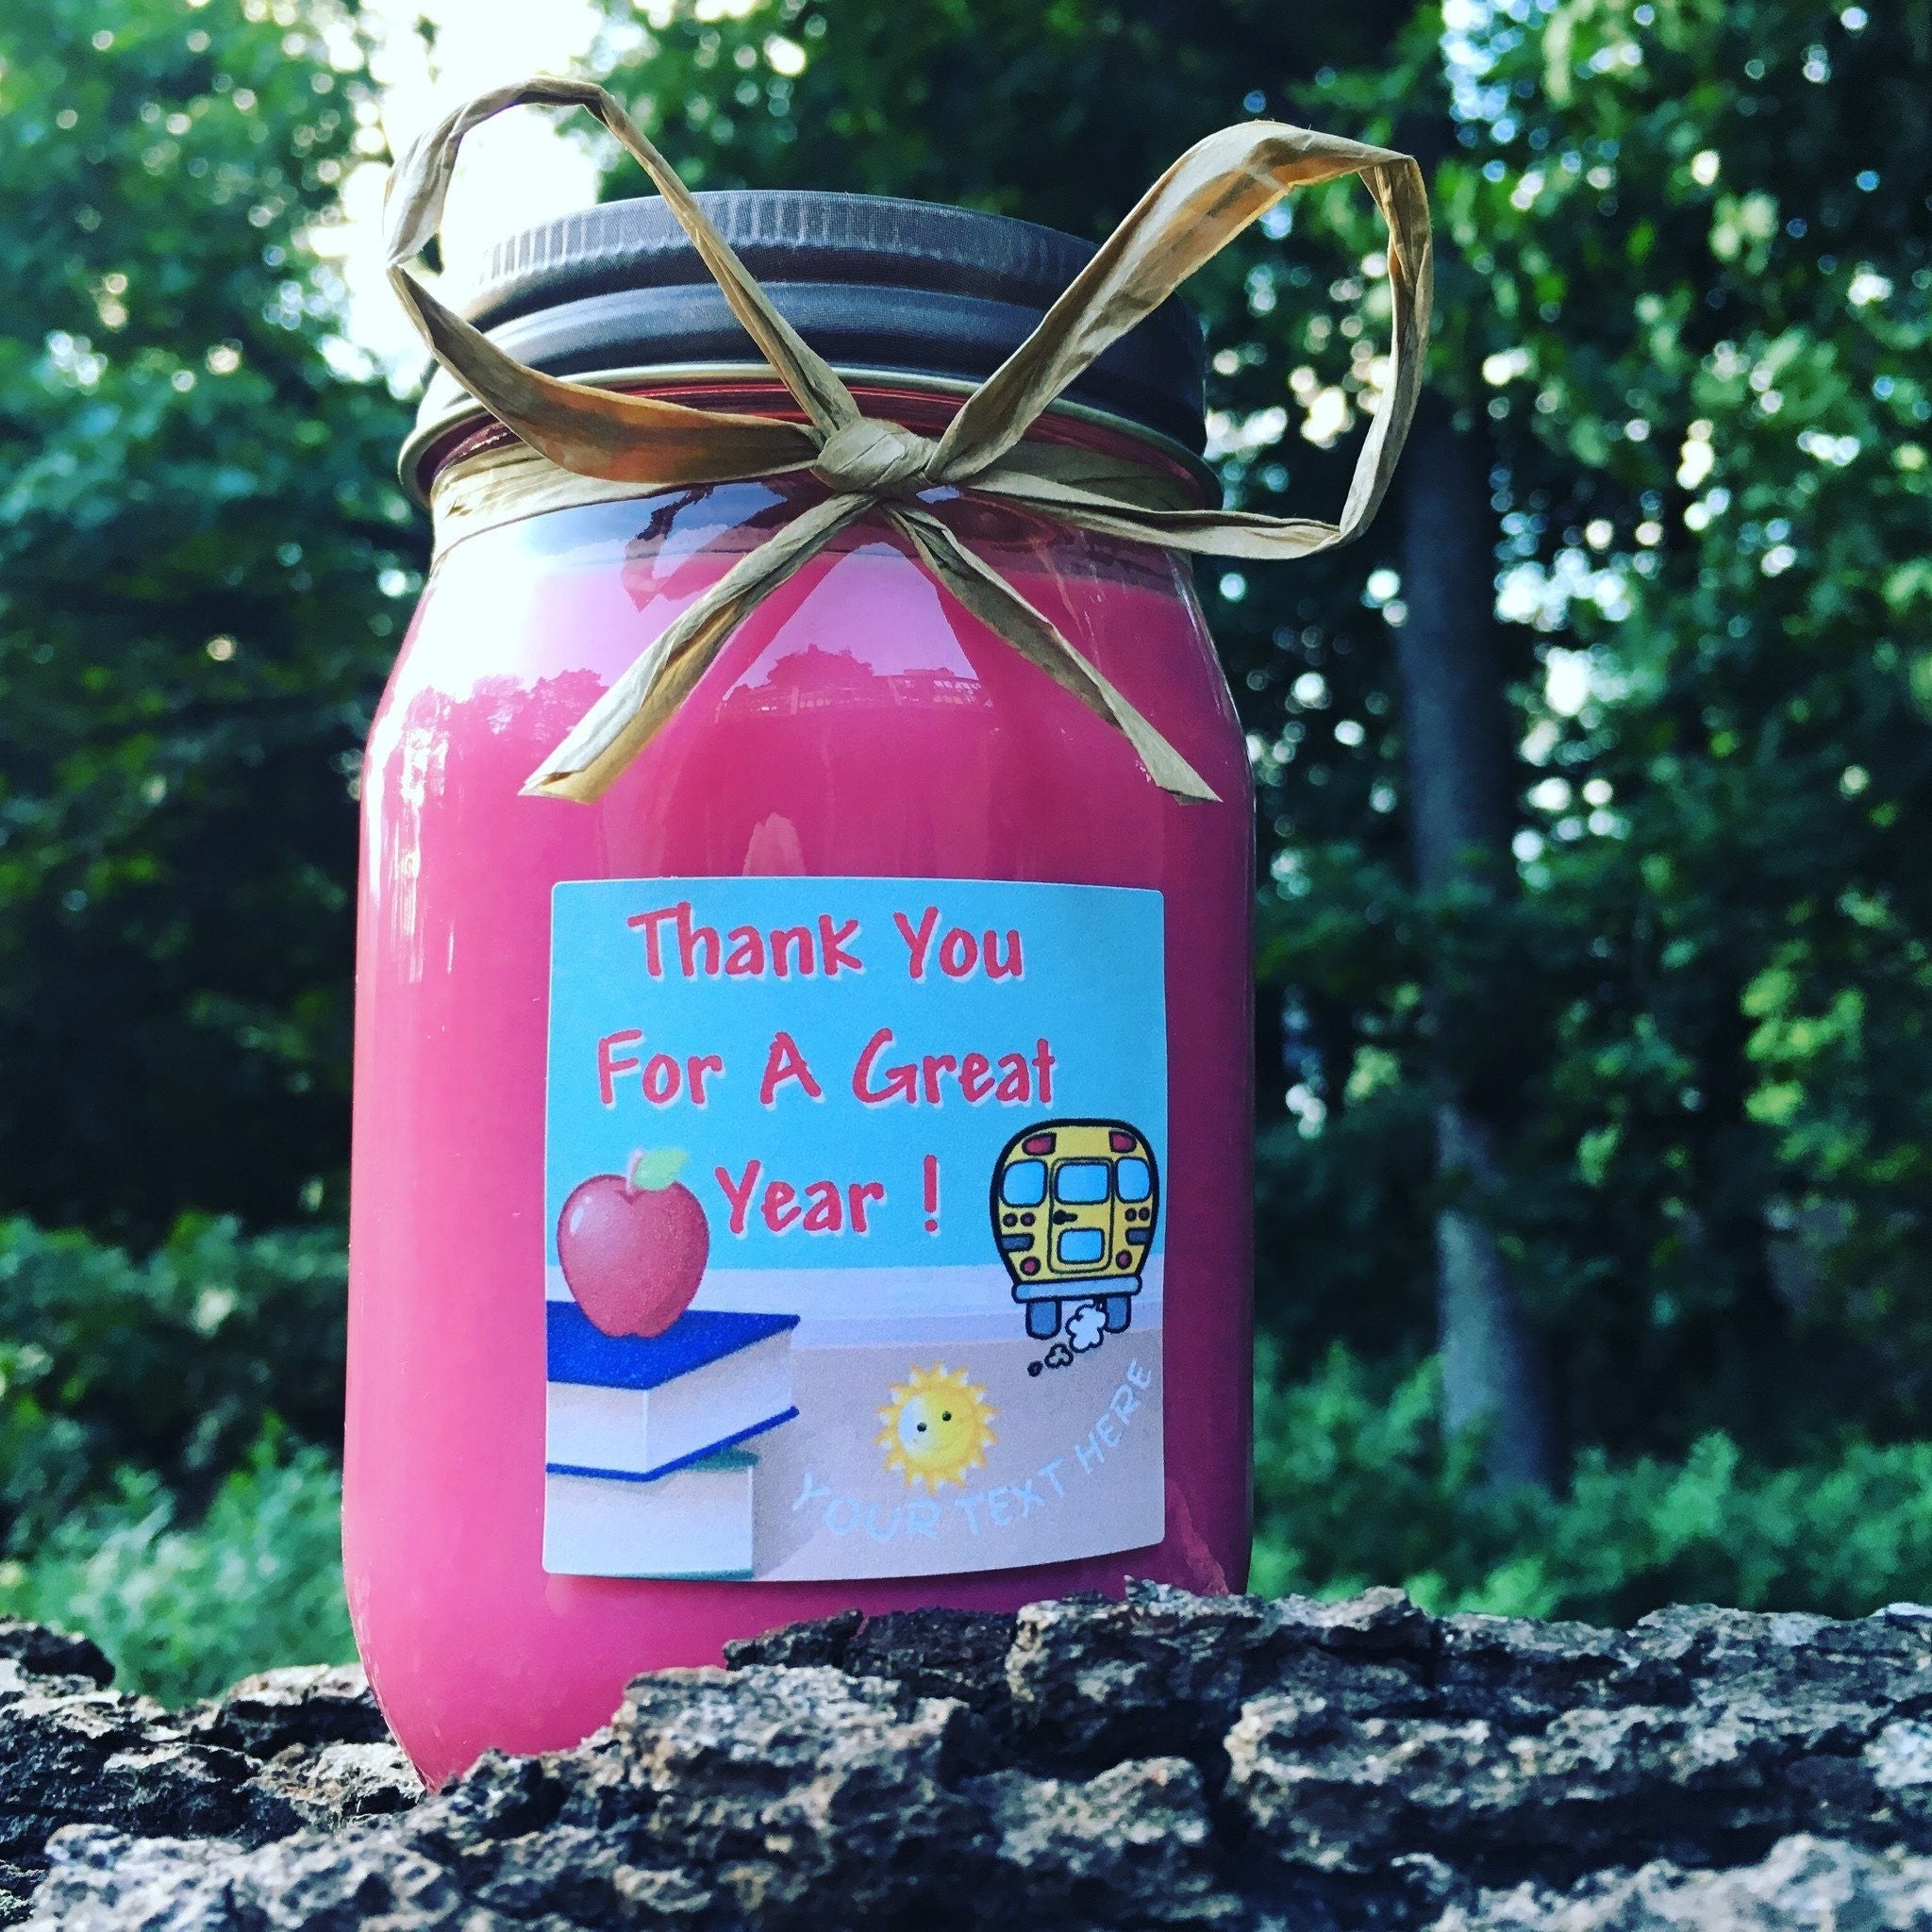 End Of School Thank You Teachers Natural Hand Poured Soy Candles & Melts - Pint - Bella-Mia Naturals All Natural Soy Candles & Lip Balms - 3